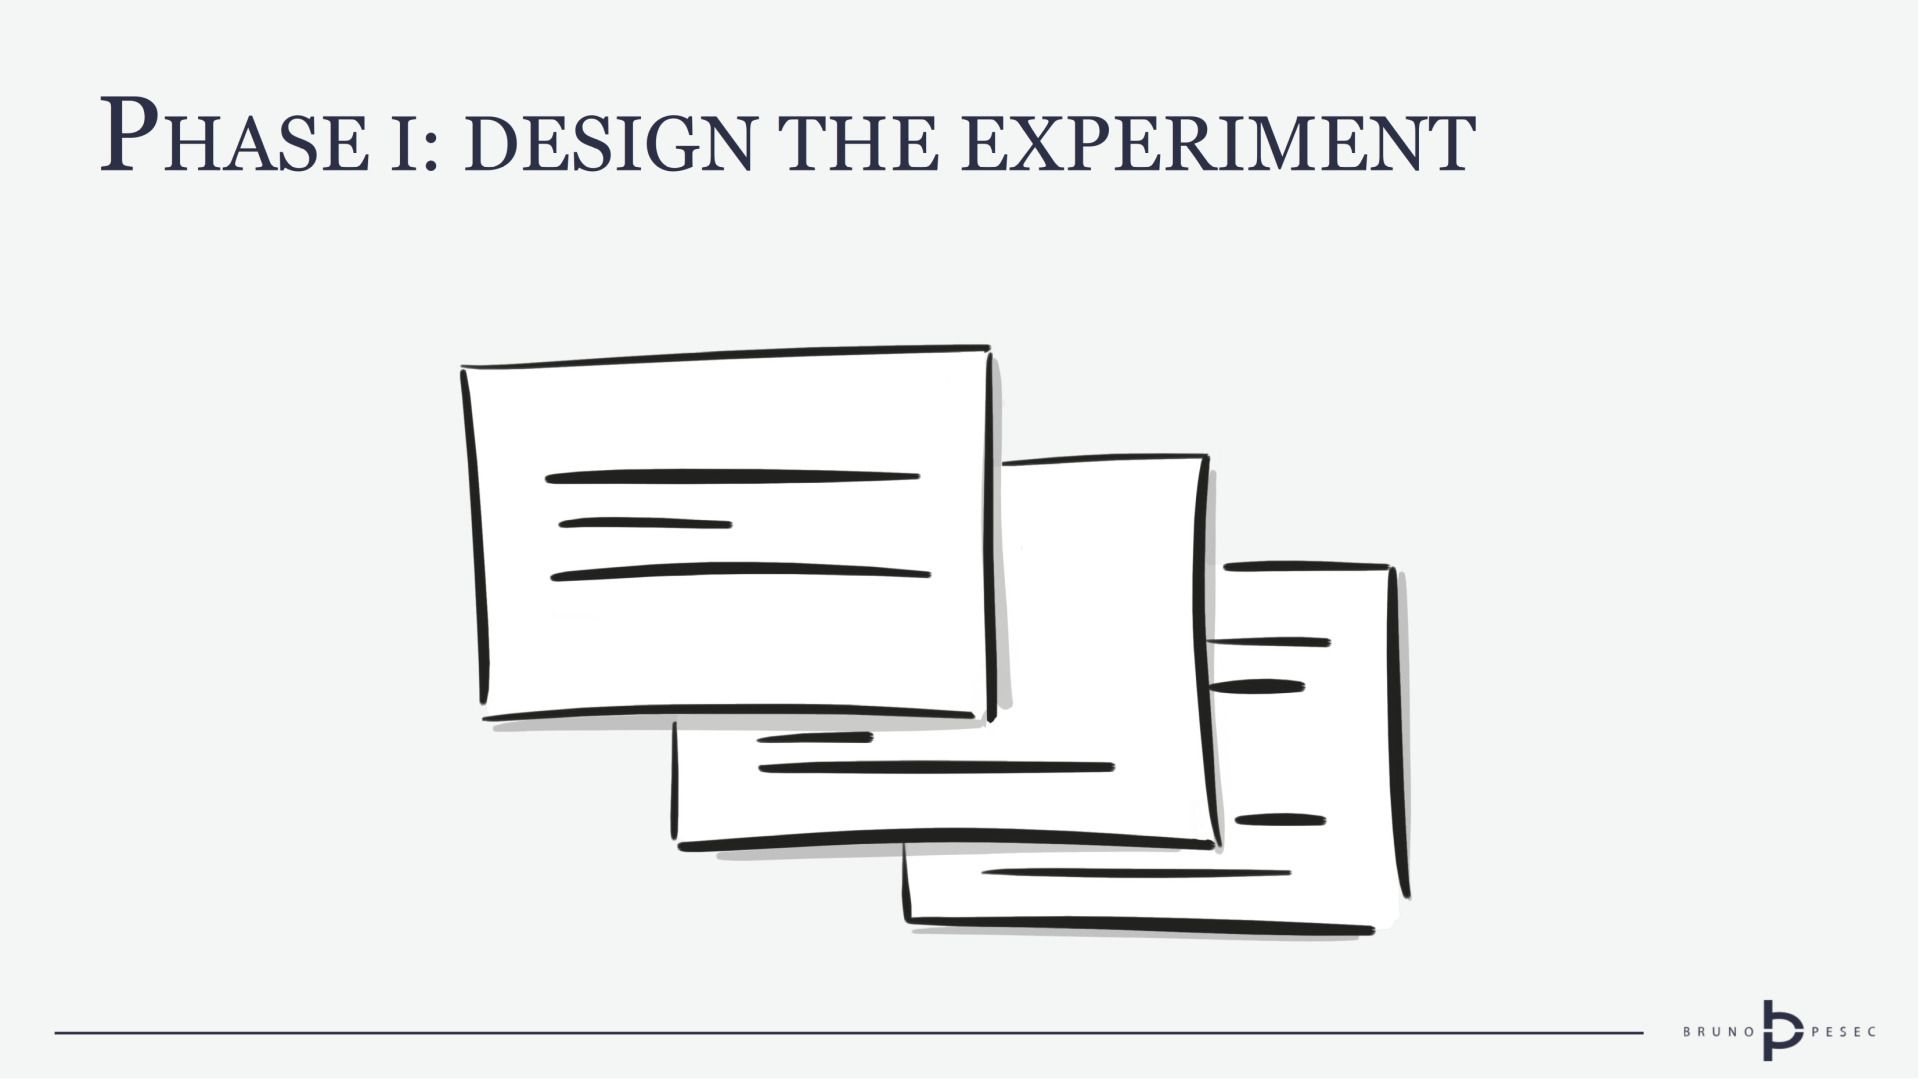 Phase I: Design the experiment